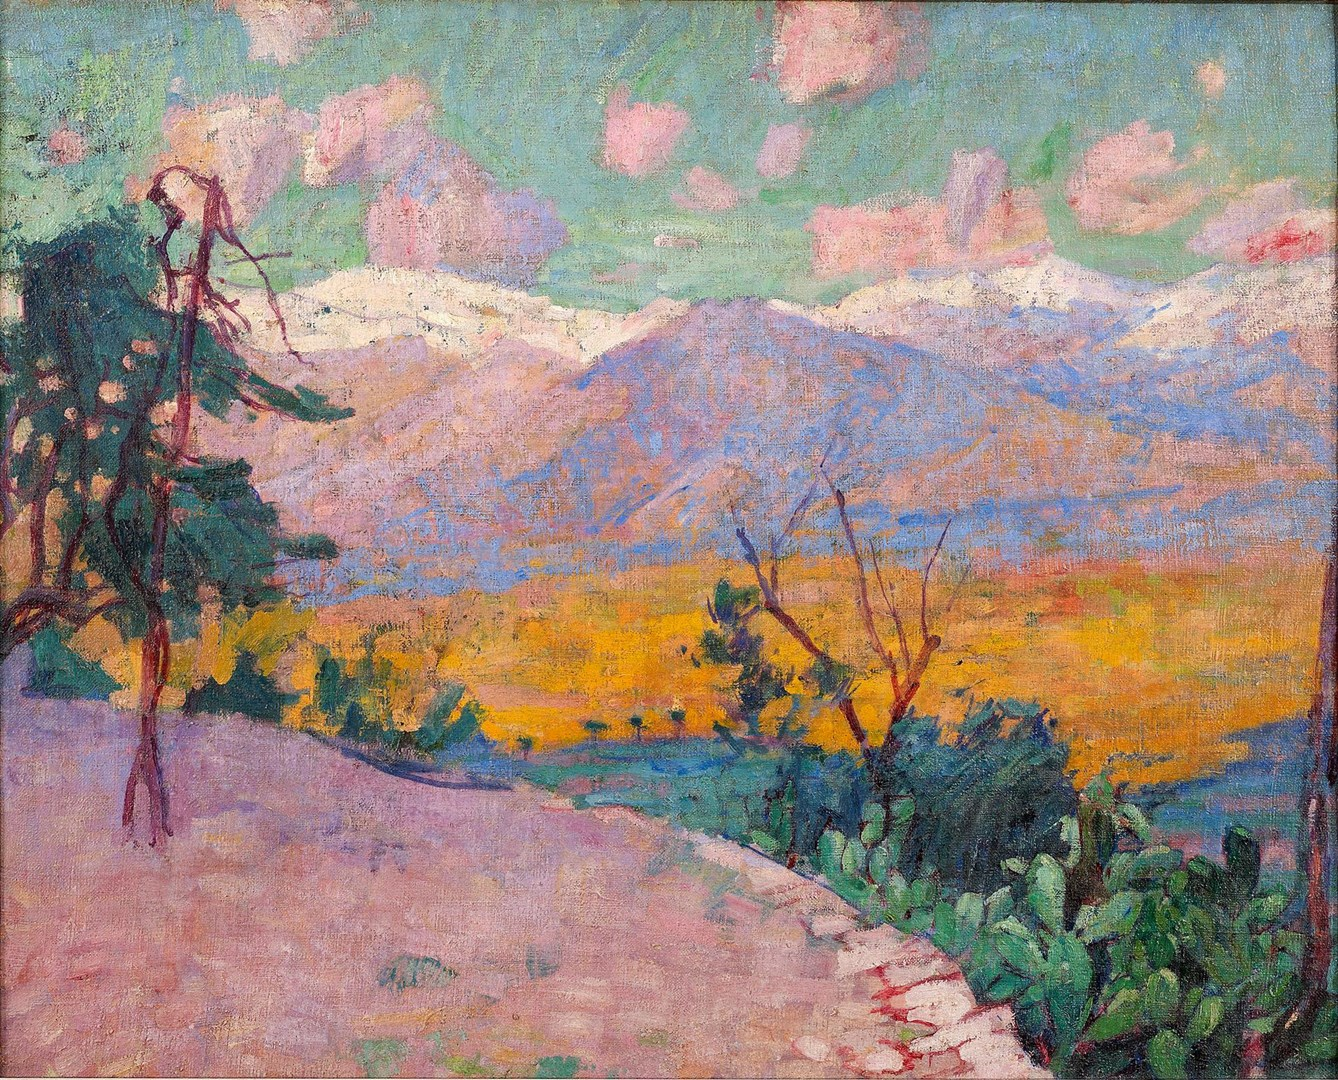 Les Terrasses de Monte Cassino by John Russell